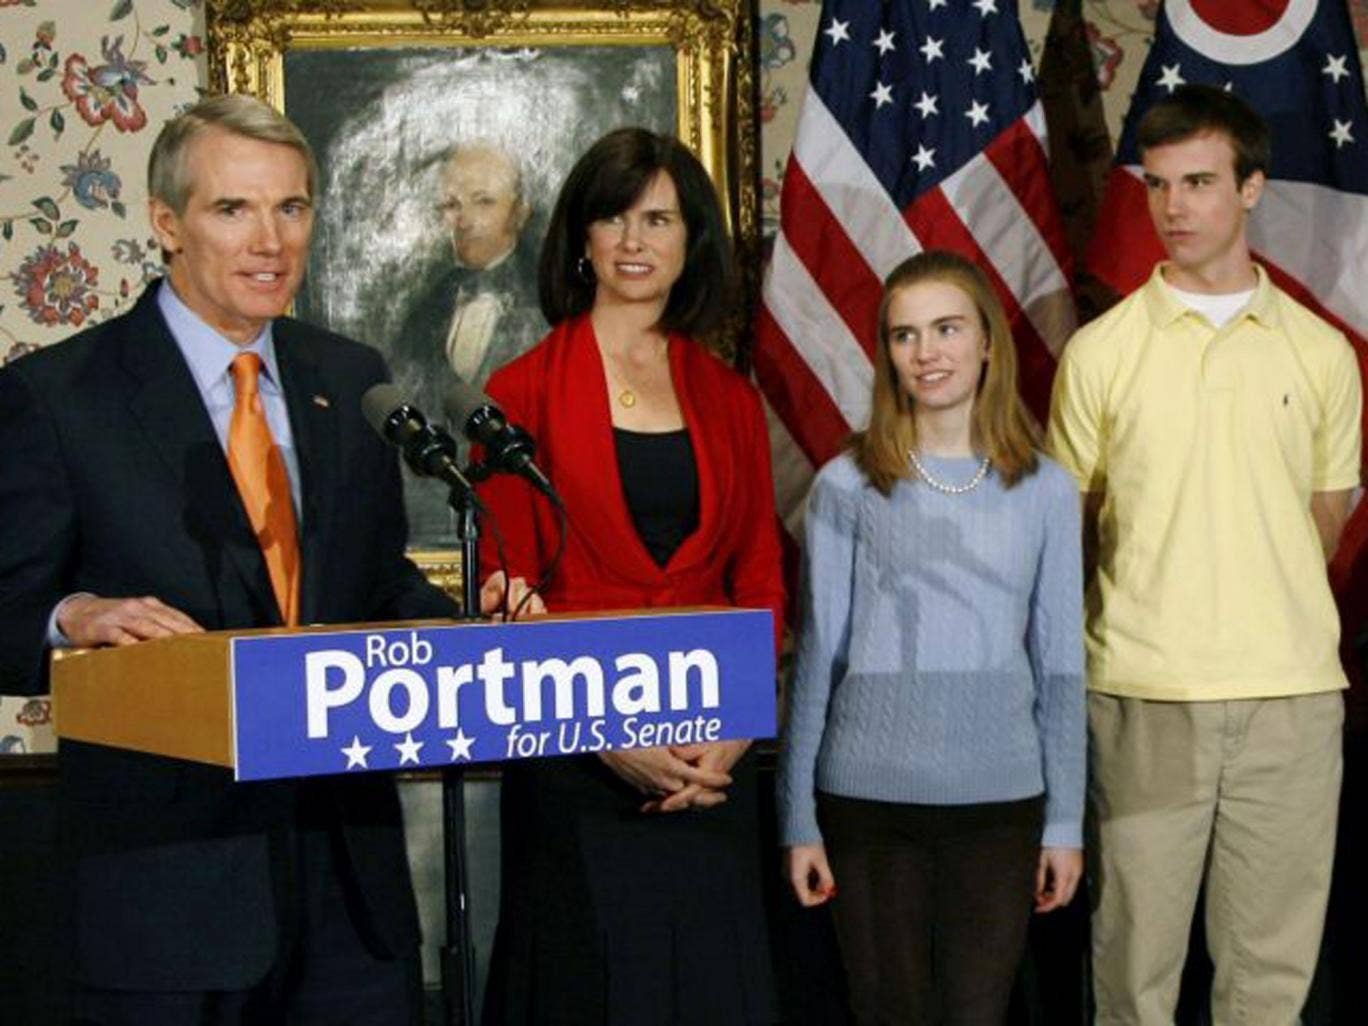 U.S. Sen. Rob Portman, from left, with his wife, Jane, daughter Sally, and son Will,